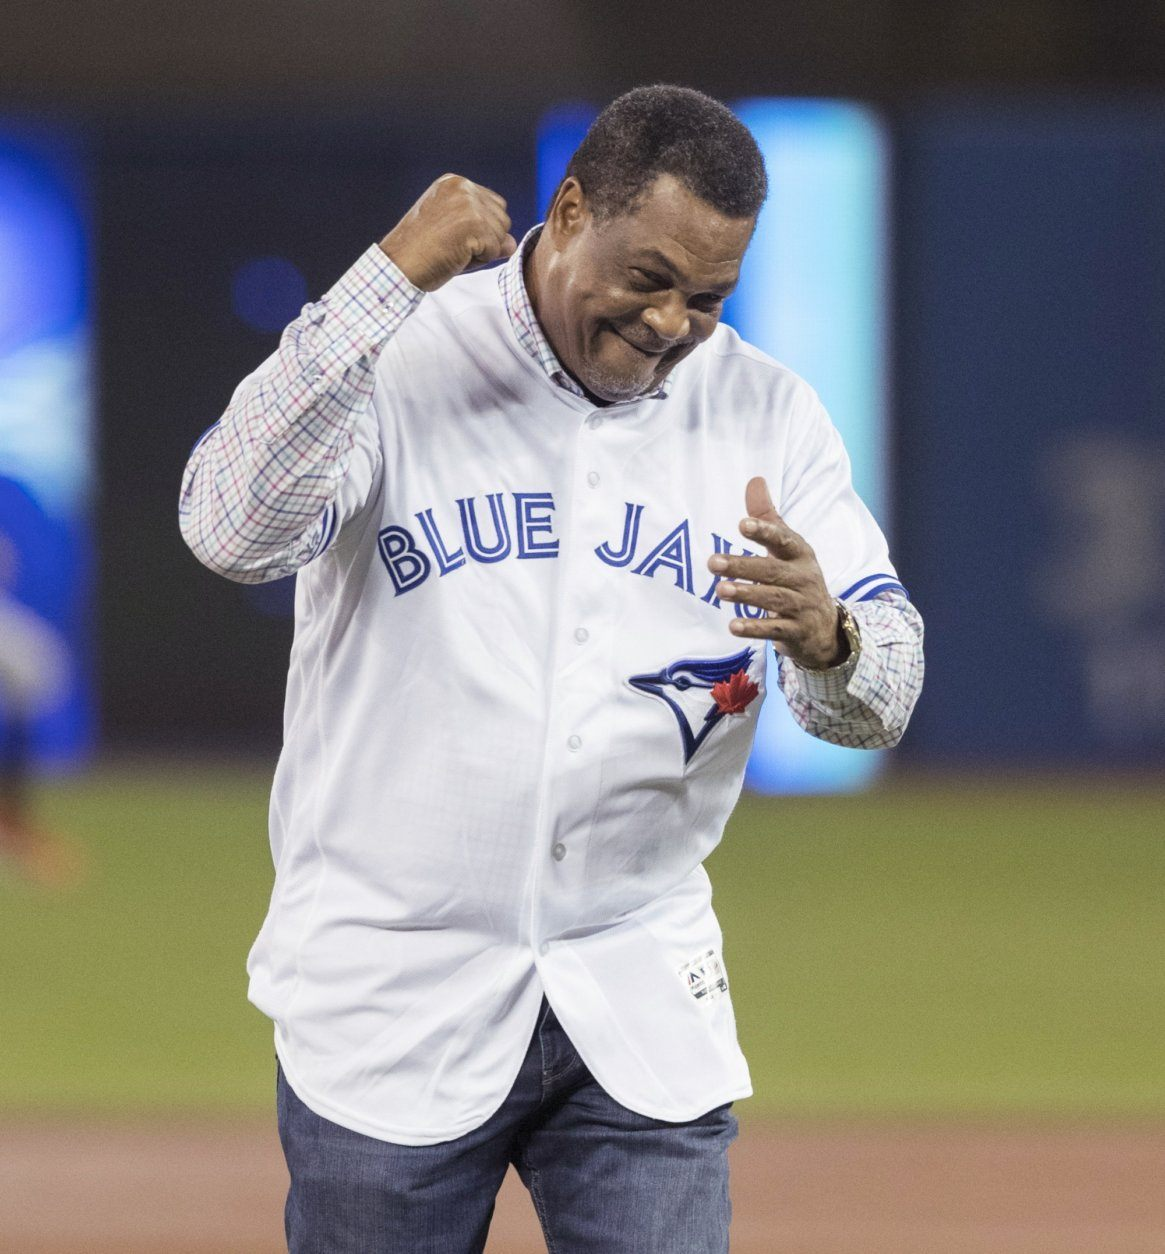 Former Toronto Blue Jays George Bell reacts after throwing out a ceremonial first pitch before the team's baseball game against the Baltimore Orioles on Friday, July 5, 2019, in Toronto. (Fred Thornhill/The Canadian Press via AP)